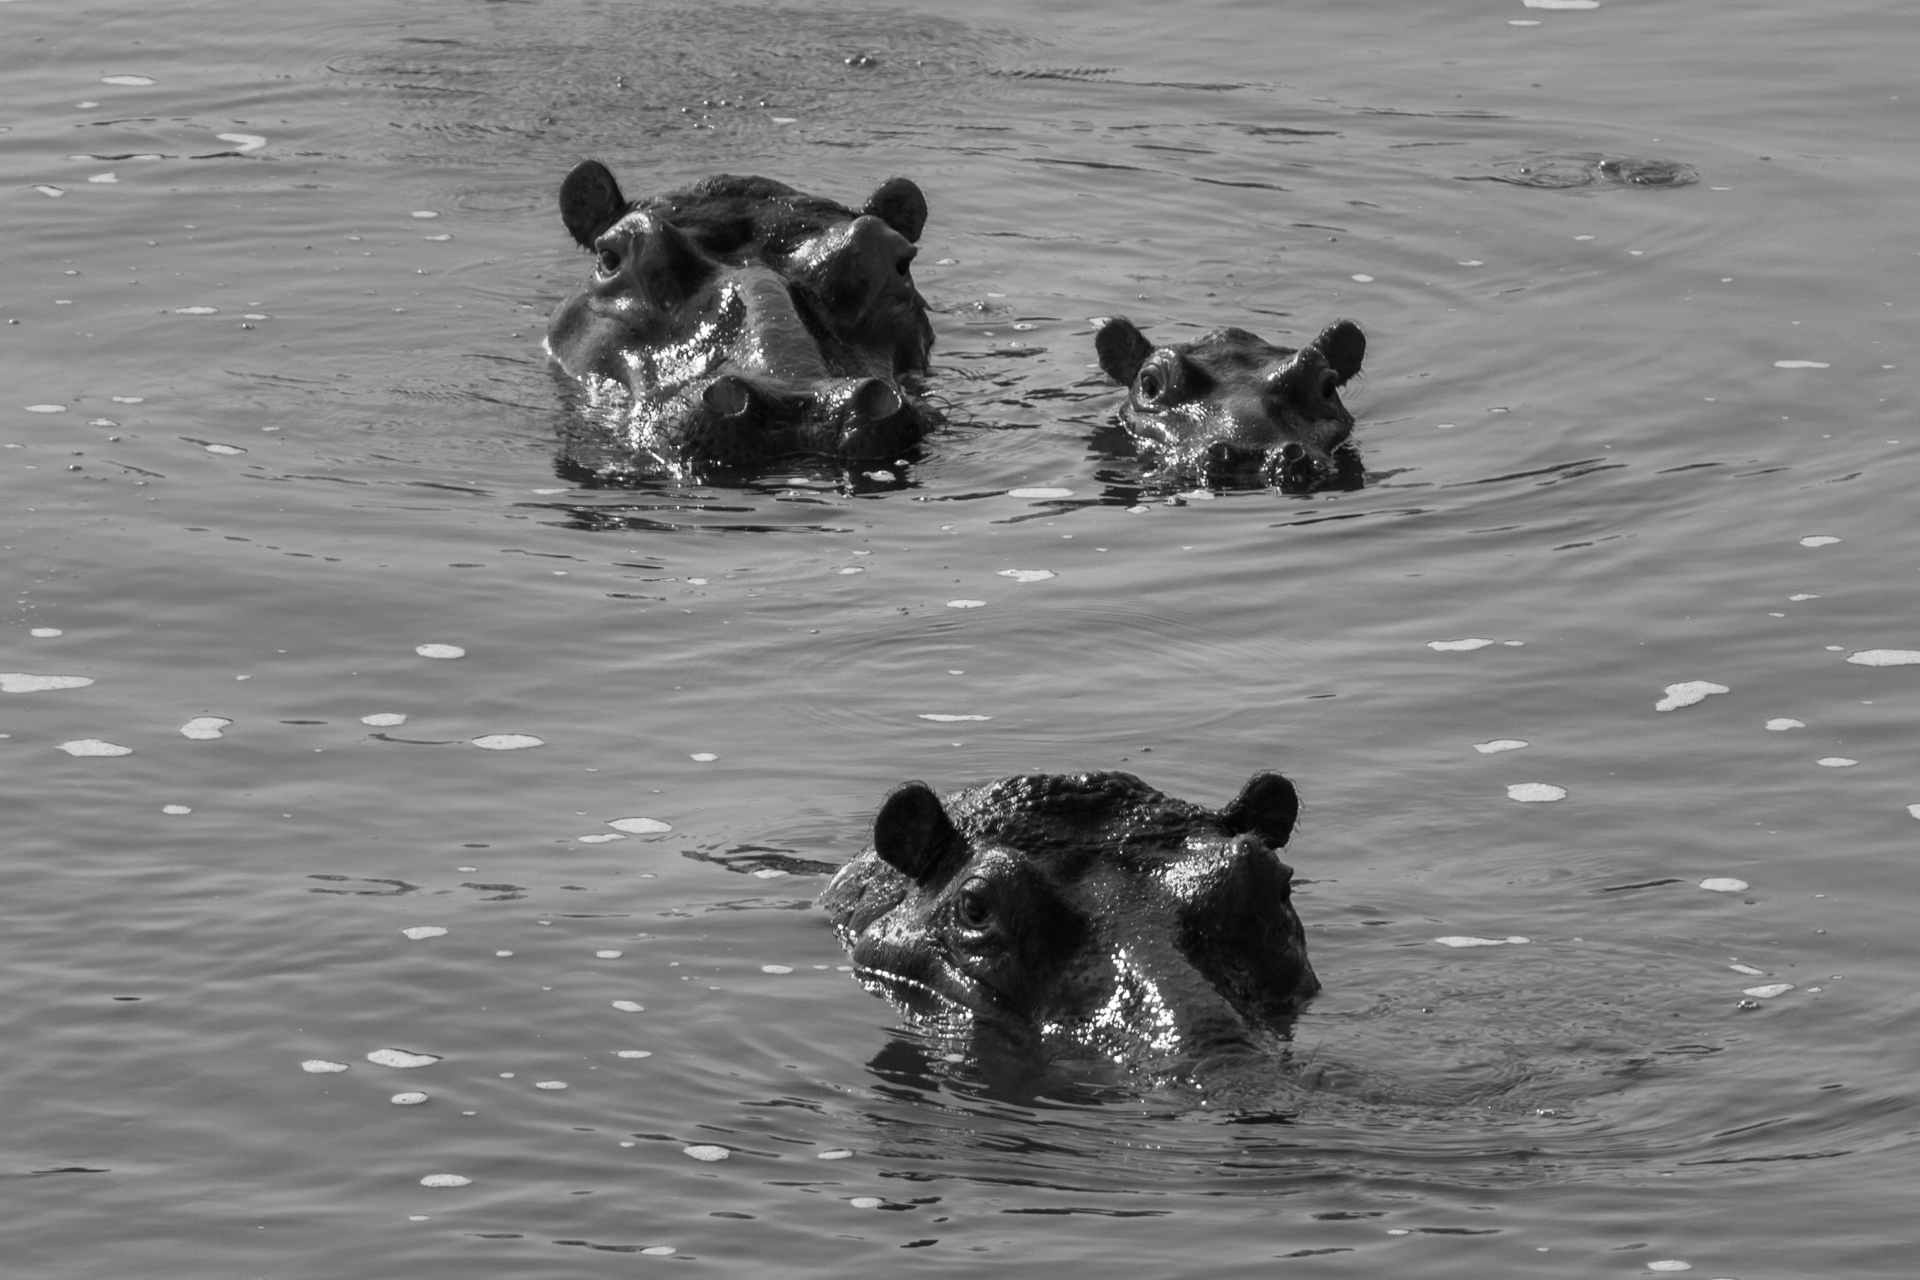 A family of Hippos seem to pose for the photo